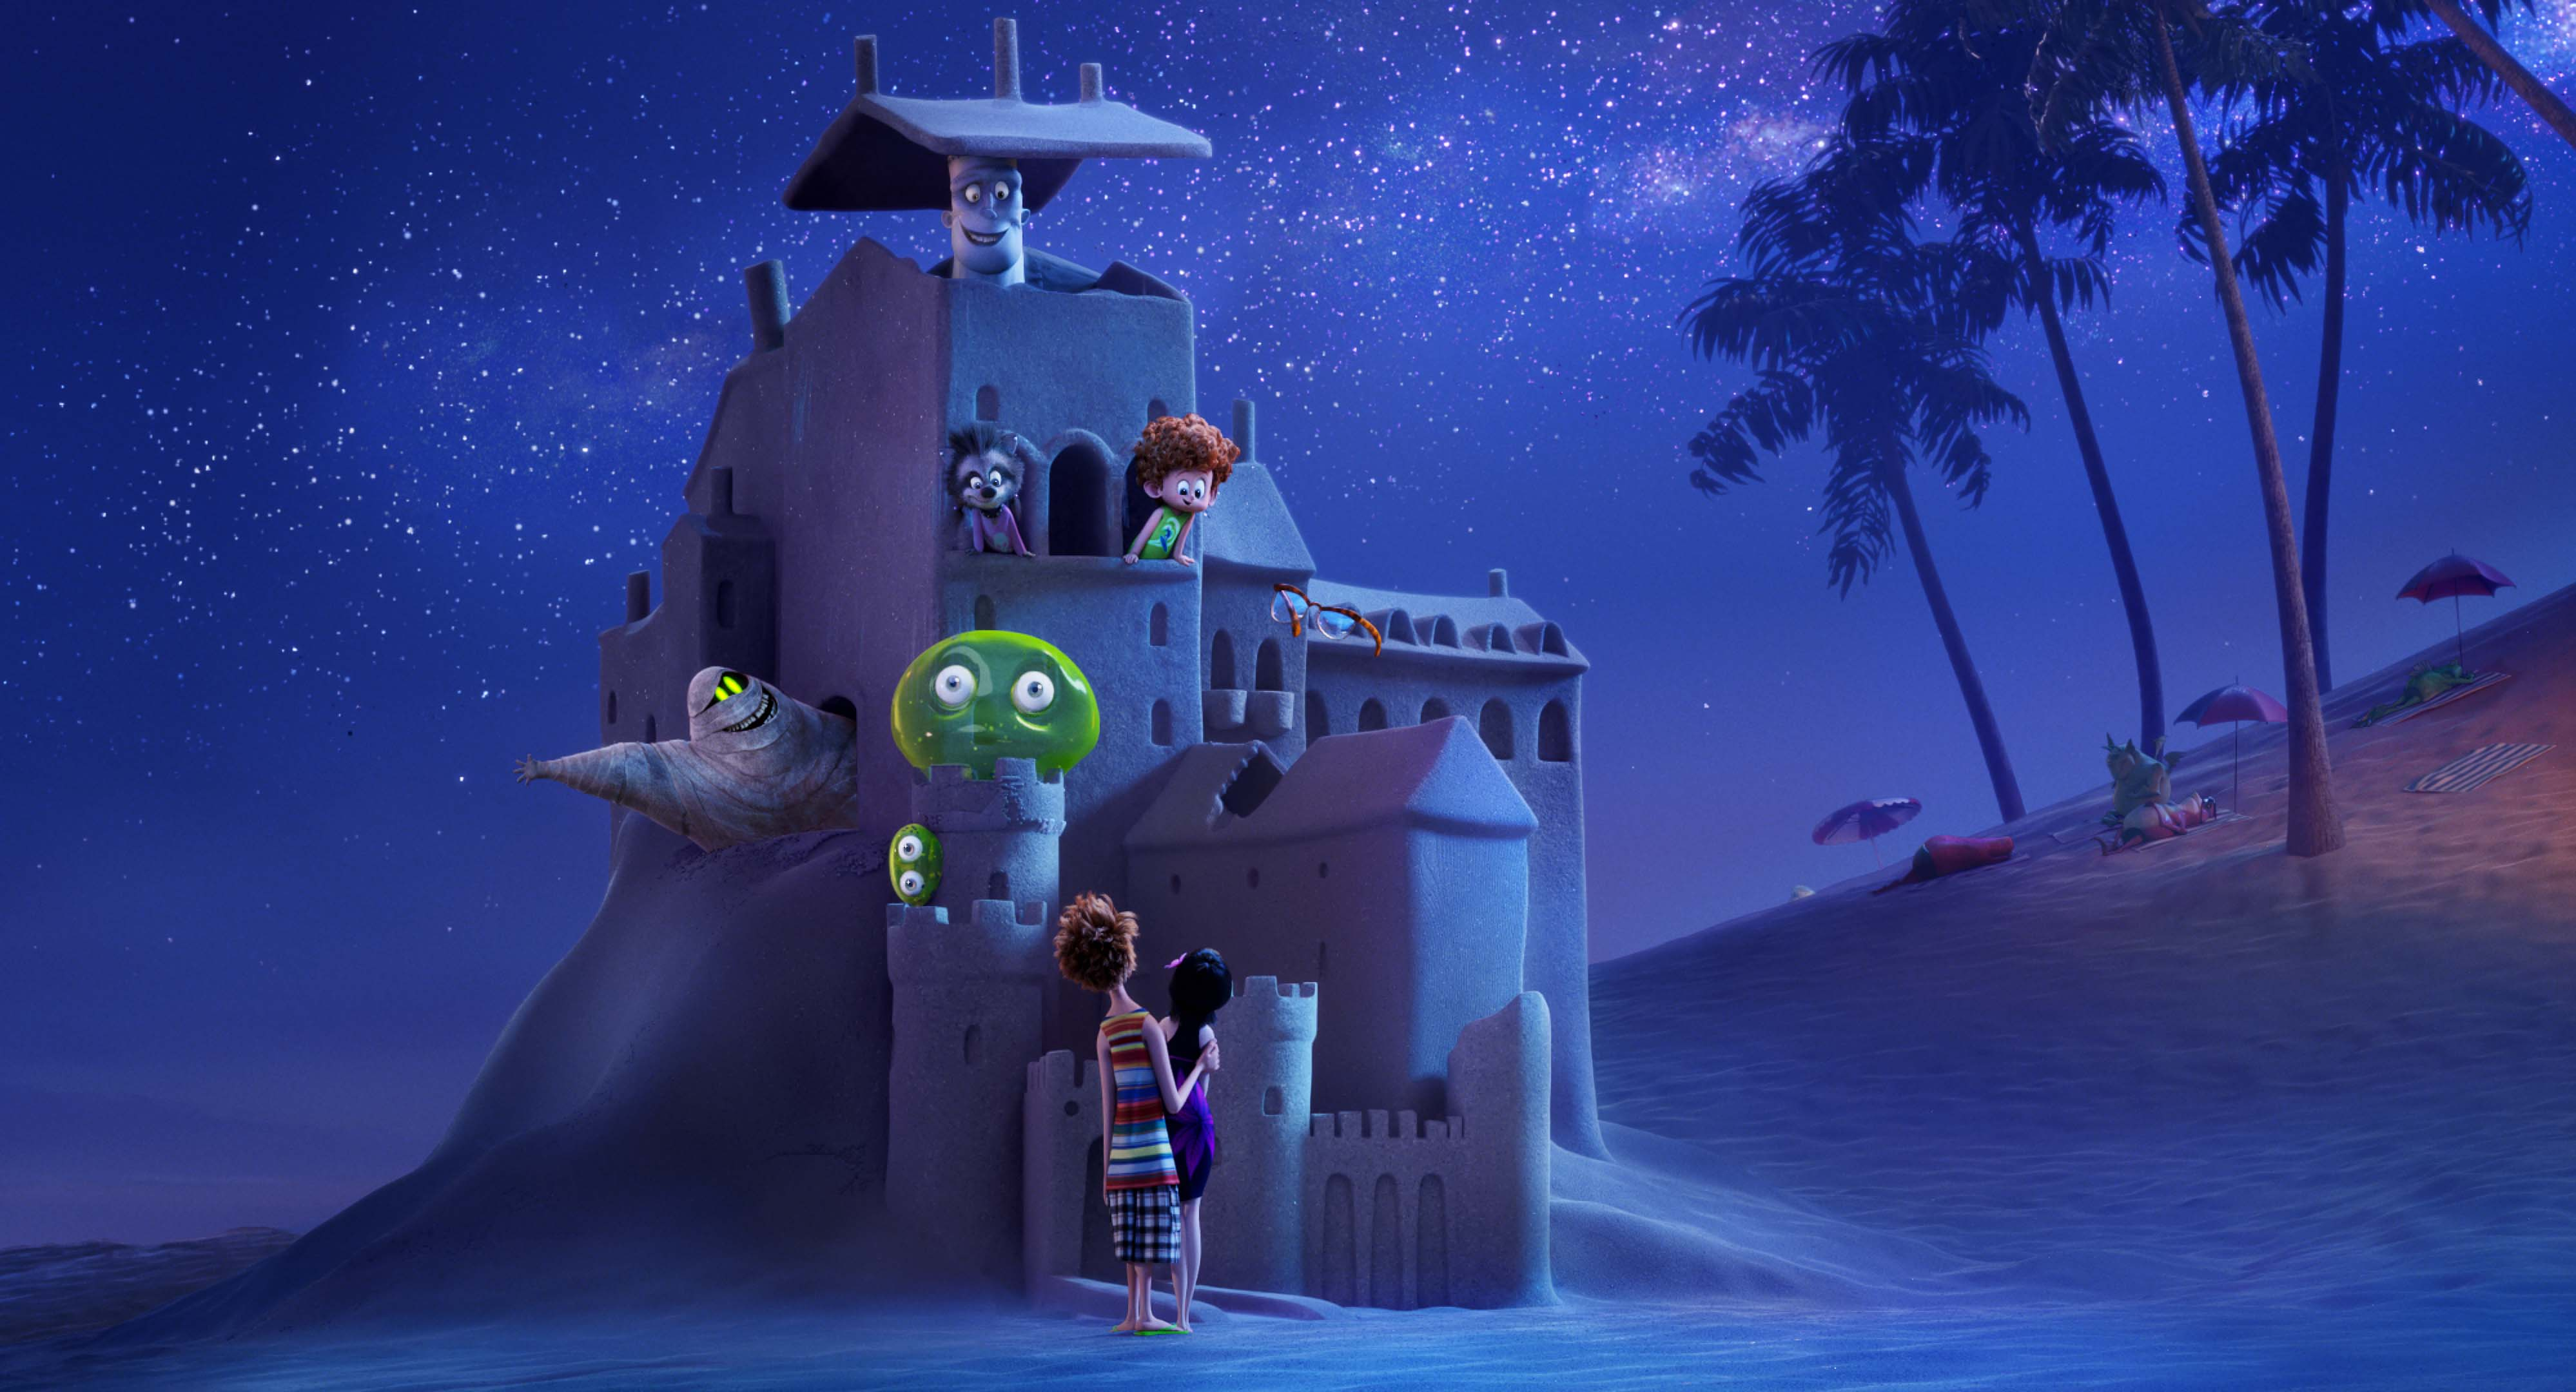 Hotel Transylvania 3 scares up a win at the box office ...